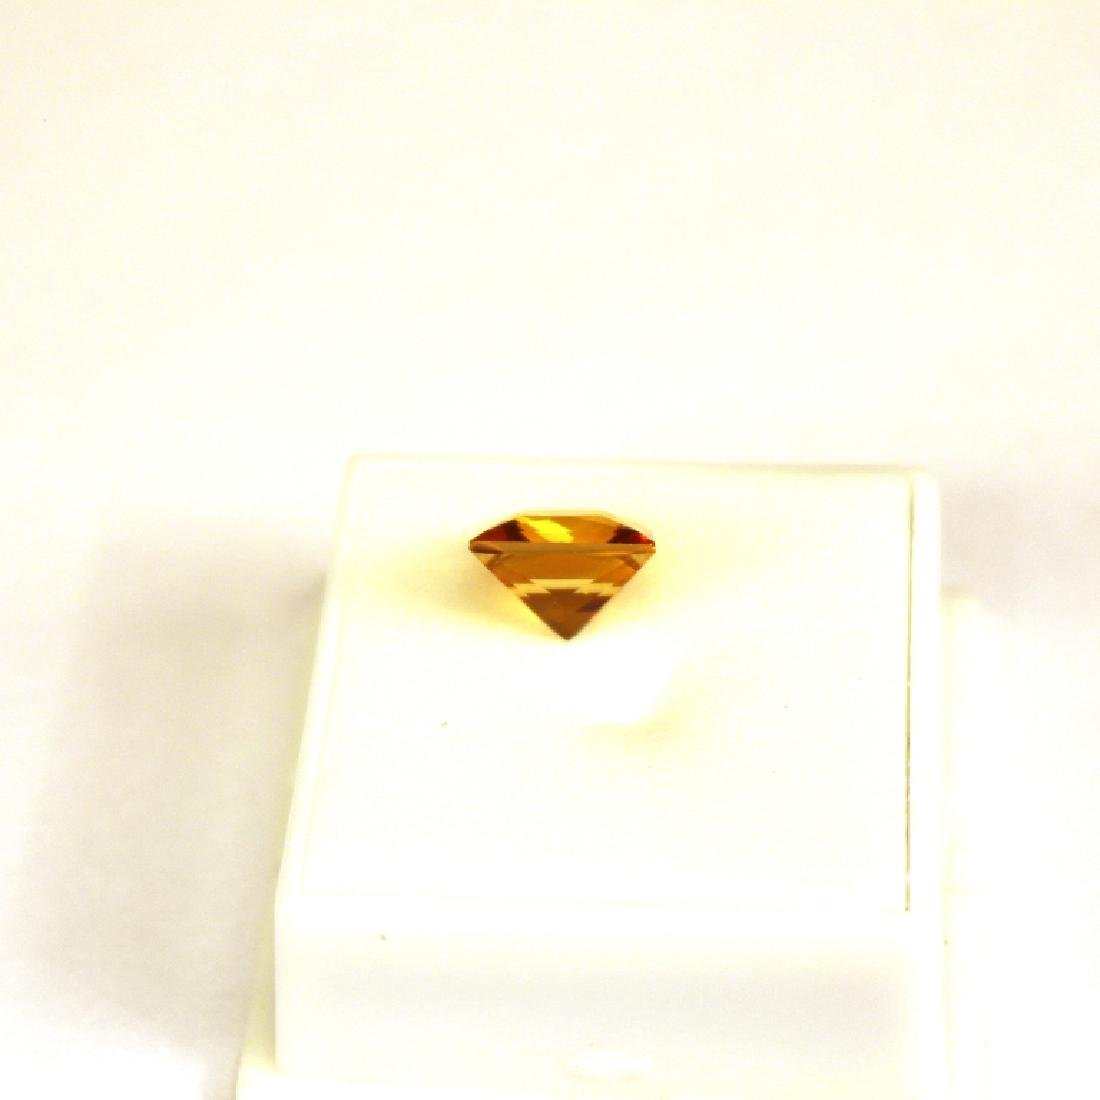 5.91 CT PC Treated Pineapple Topaz Gemstone - 8